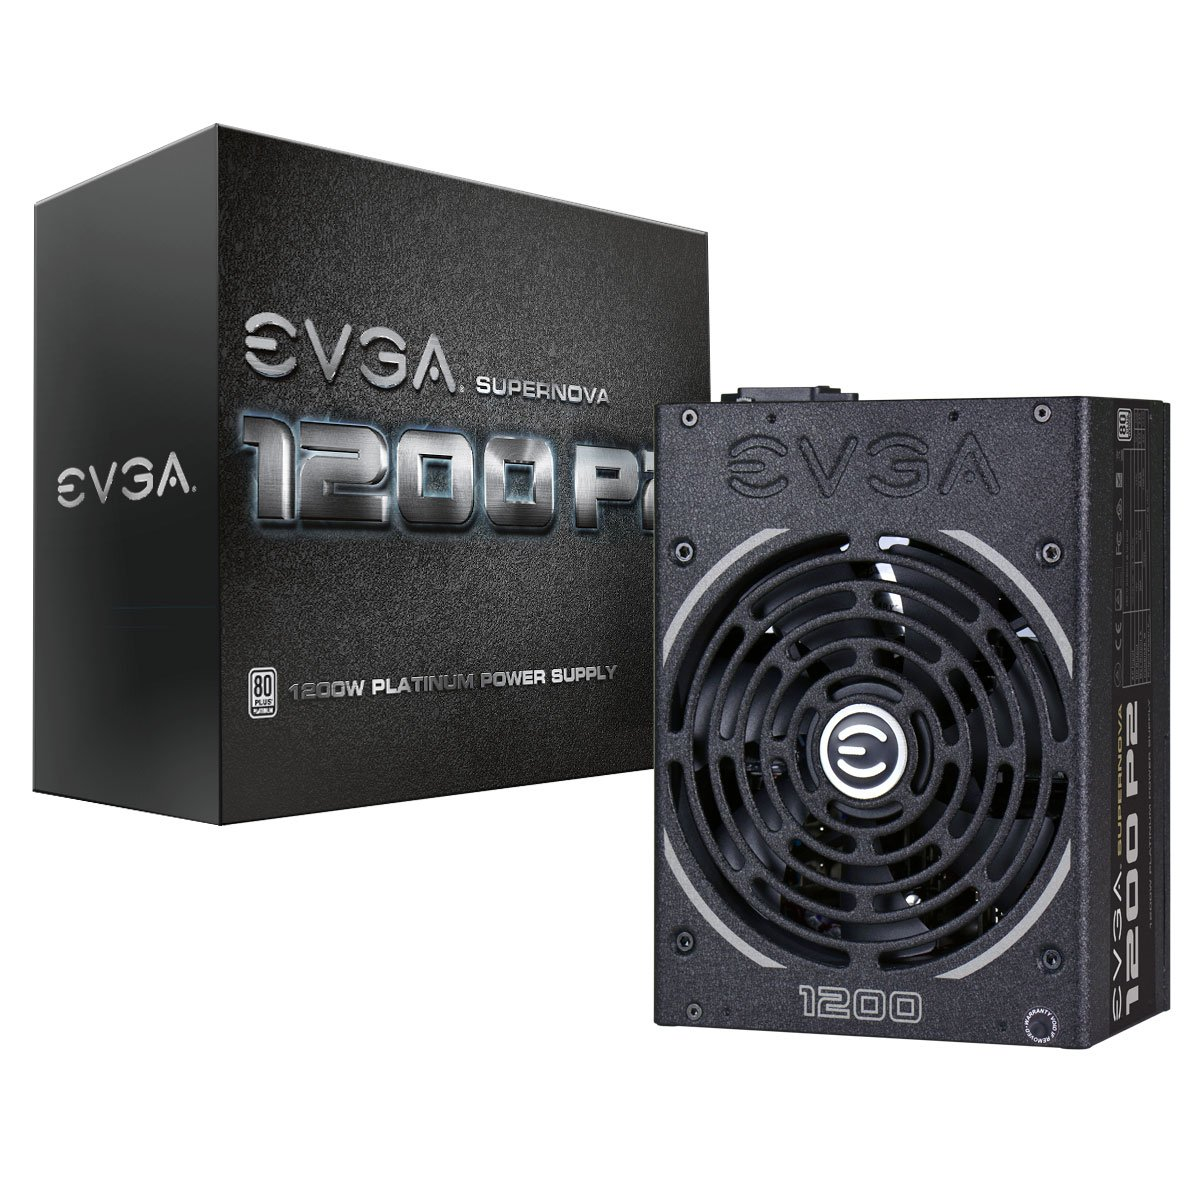 EVGA SuperNOVA 1200 P2 80+ PLATINUM, 1200W ECO Mode Fully Modular NVIDIA SLI and Crossfire Ready 10 Year Warranty Power Supply 220-P2-1200-X1 by EVGA